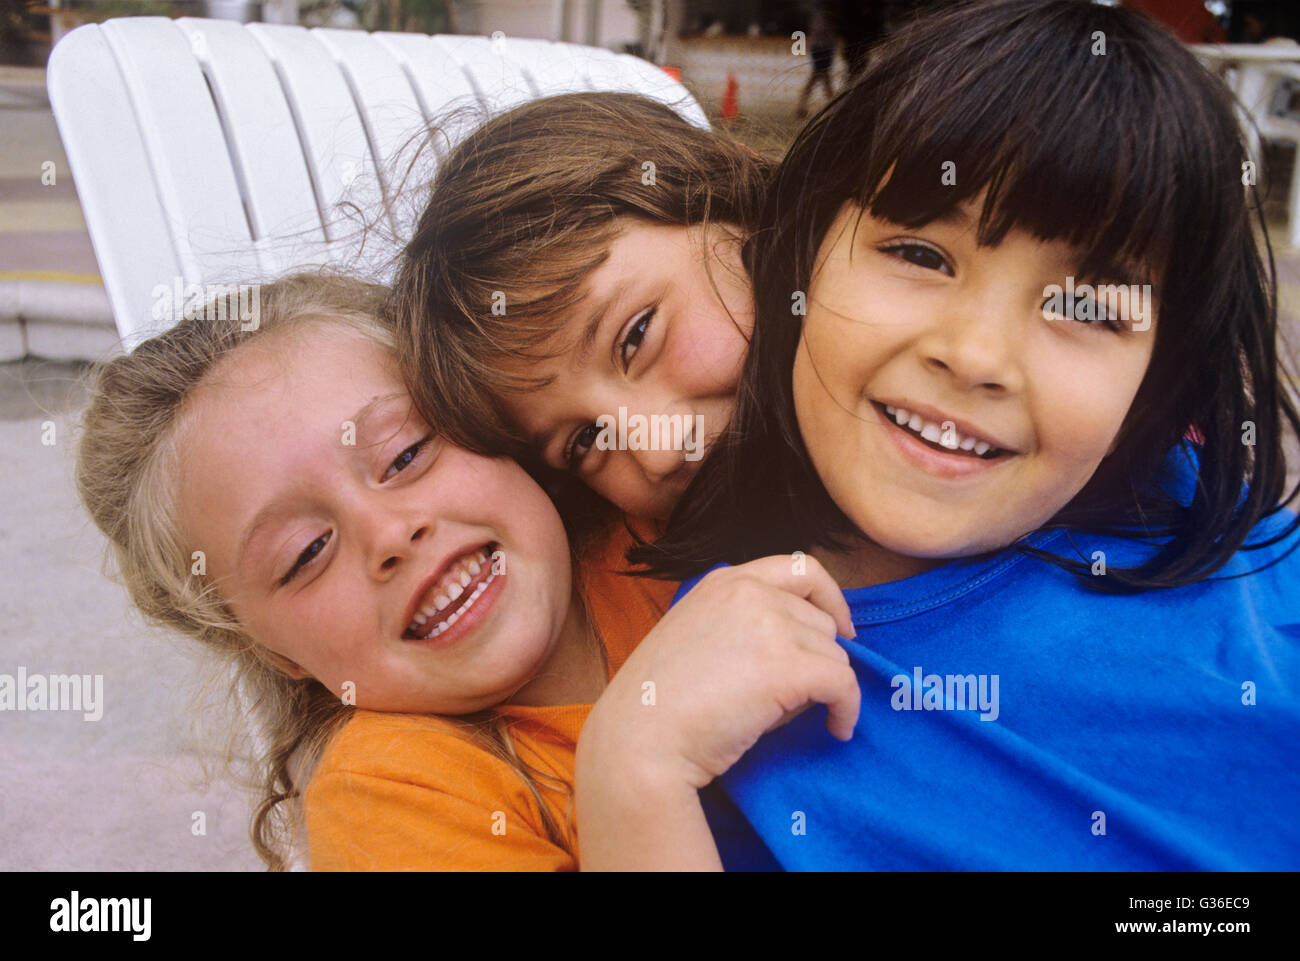 3 children hugging multi-racial group - Stock Image